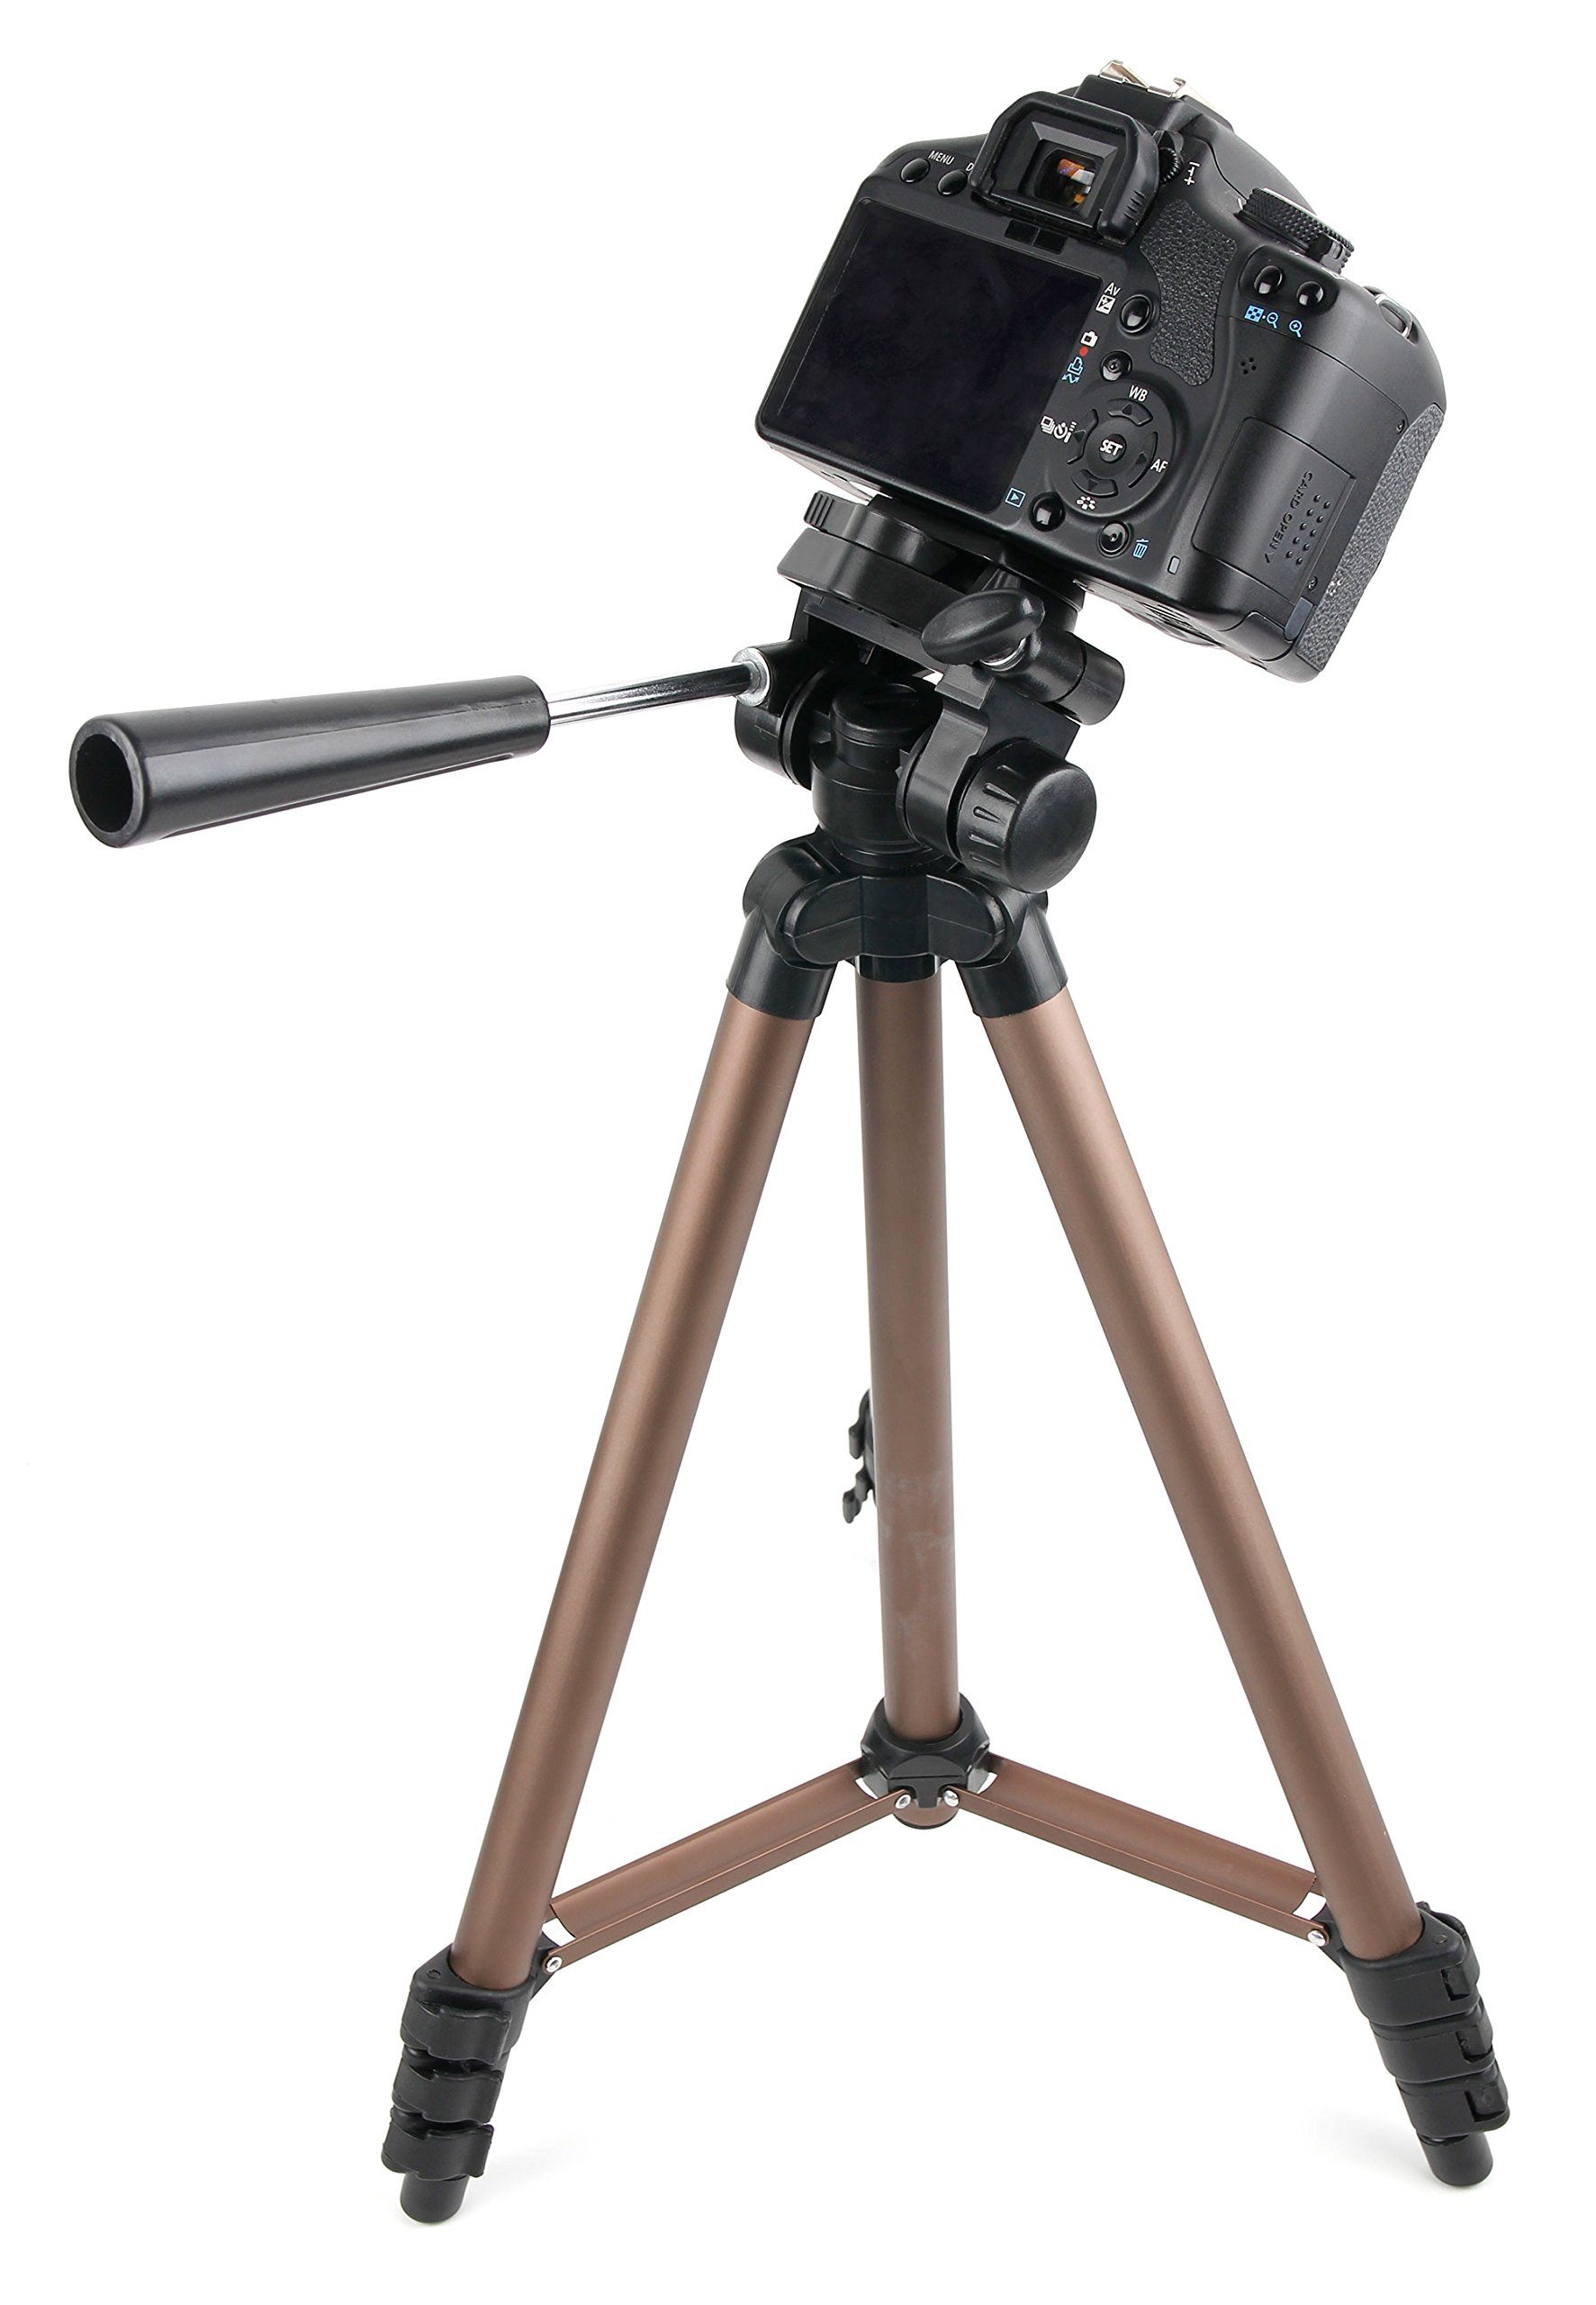 DURAGADGET Premium Quality Compact Camera Tripod with Extendable Legs and Ball-Tilt Head in Black & Gold - Suitable for The Panasonic Lumix DC-GF10| DC-GF90| DC-TX2 DMC-TZ70| GF7| DMC-FT30| DMC-TZ57 by DURAGADGET